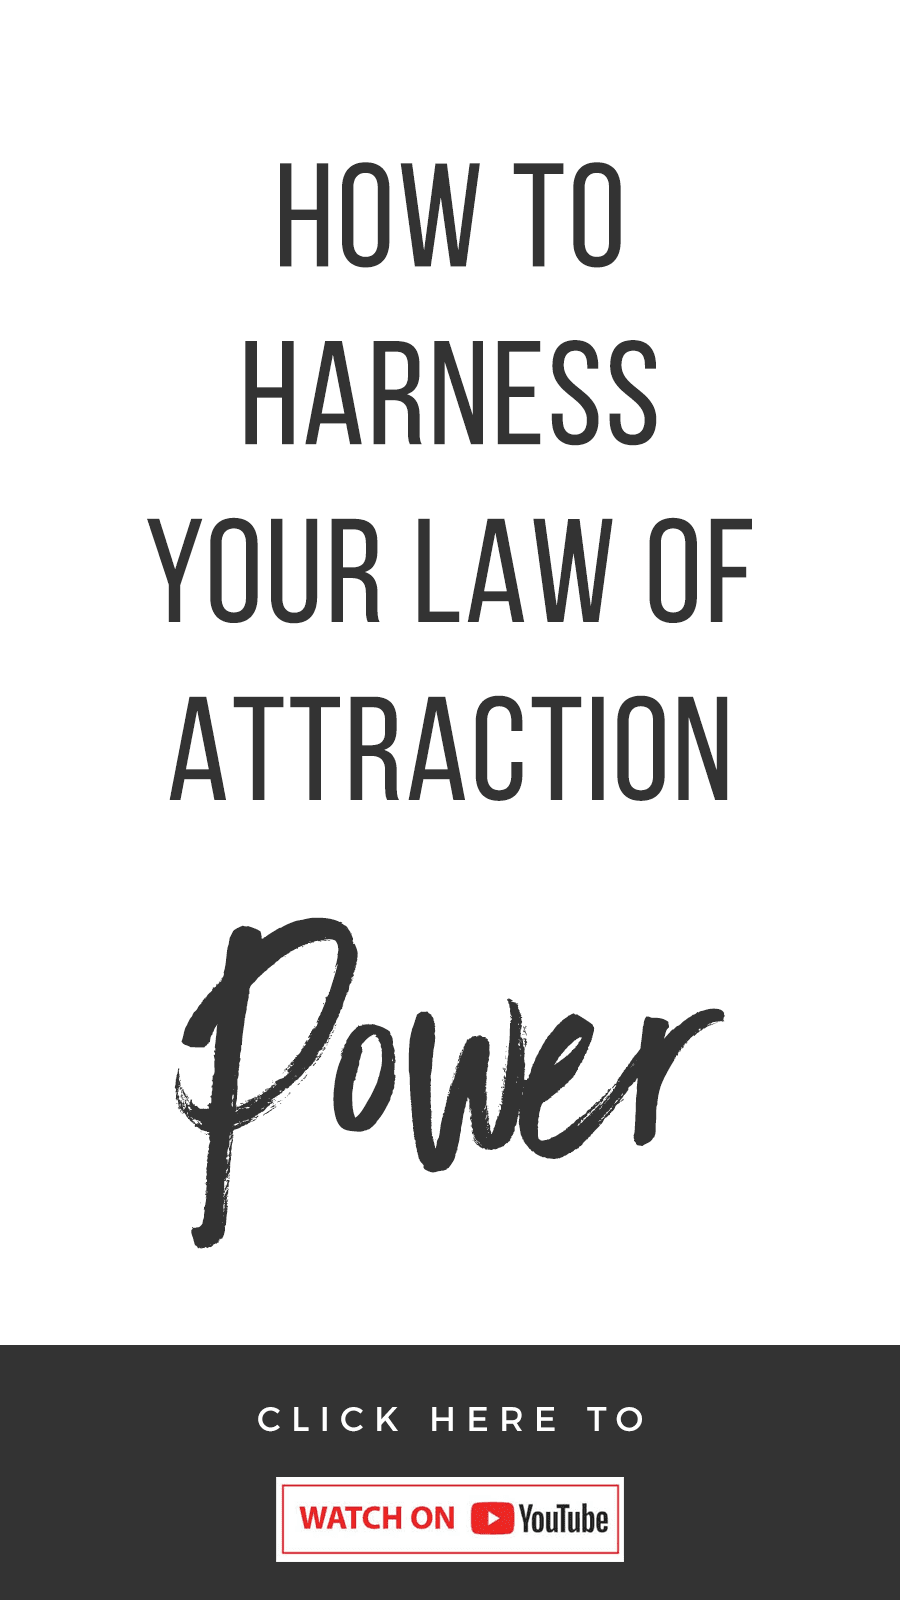 3 Ways To Harness Your Law of Attraction Power Daily